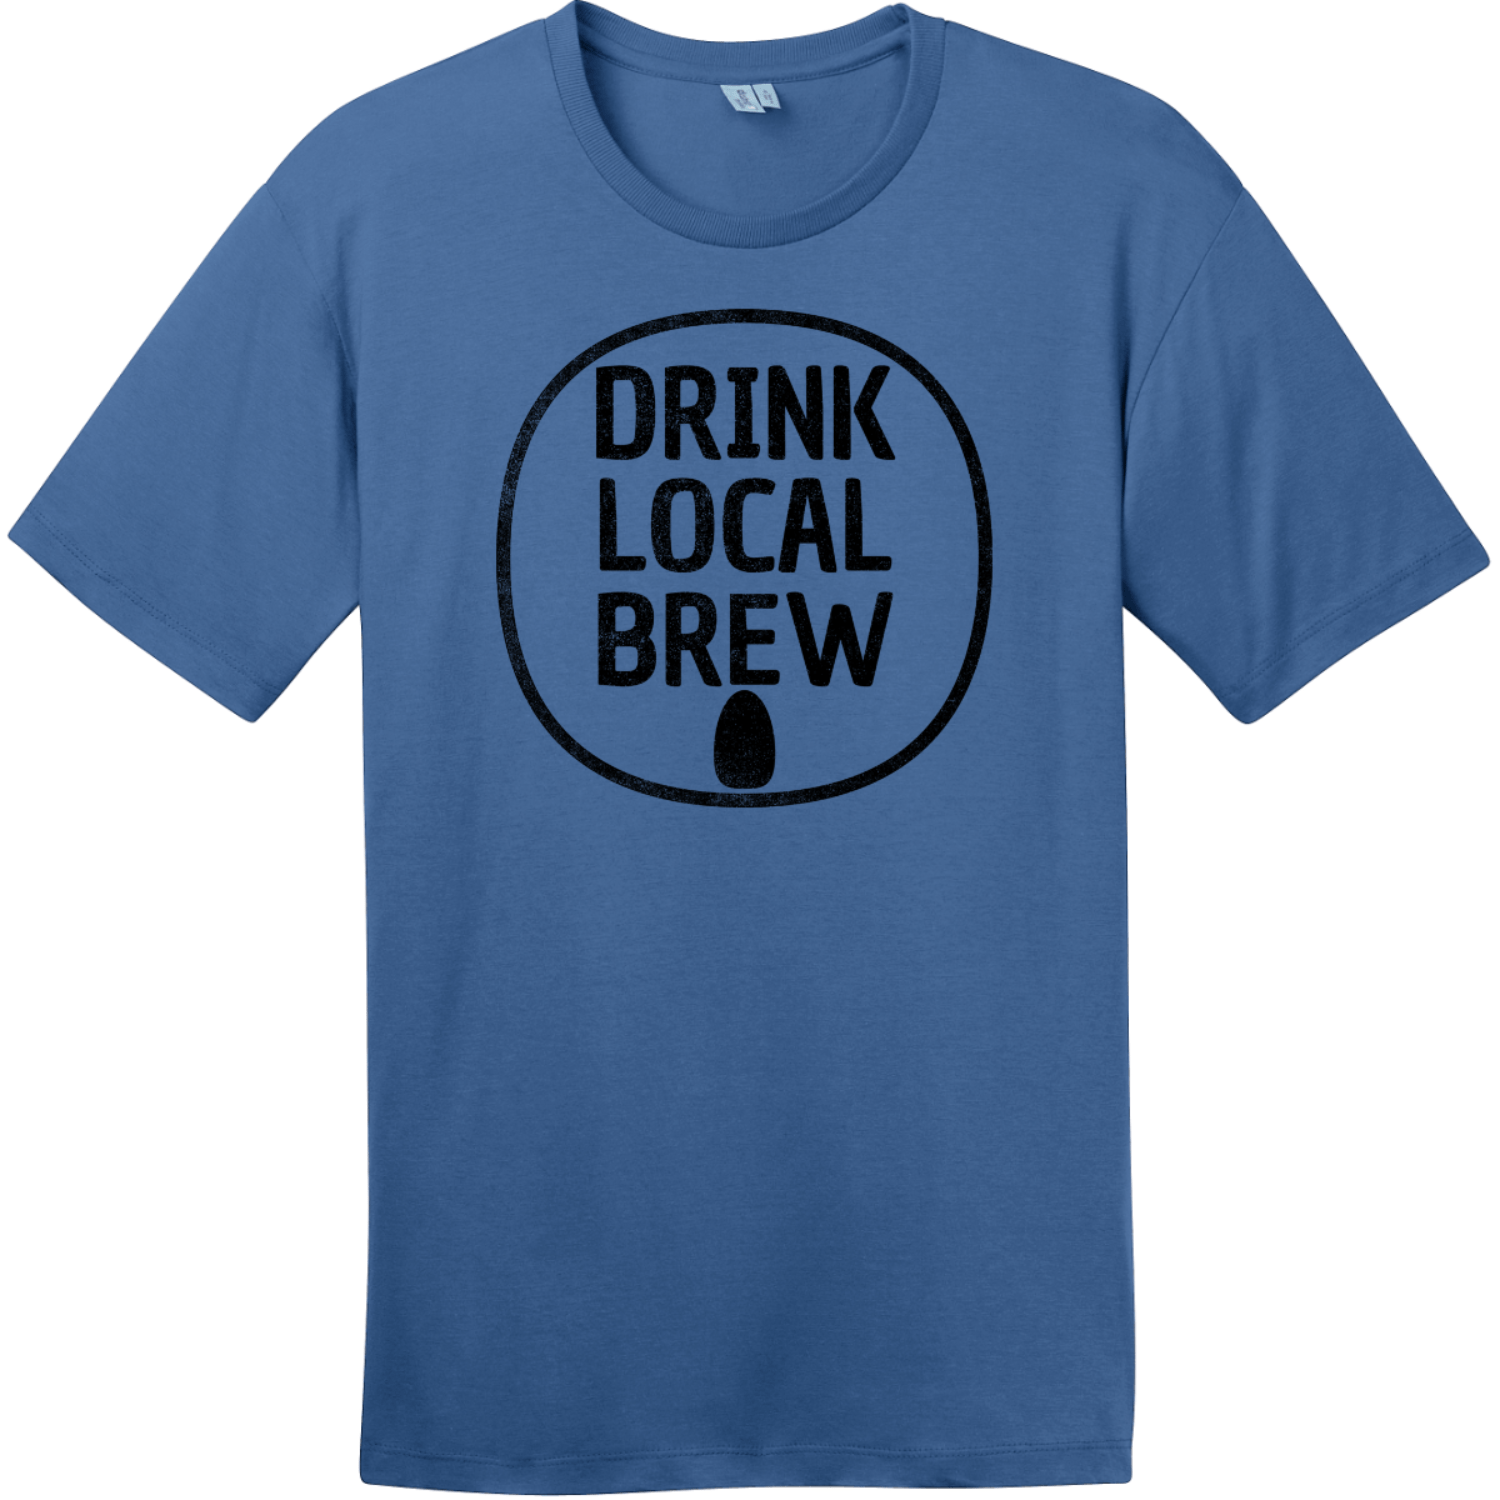 Drink Local Brew Can T-Shirt Maritime Blue District Perfect Weight Tee DT104